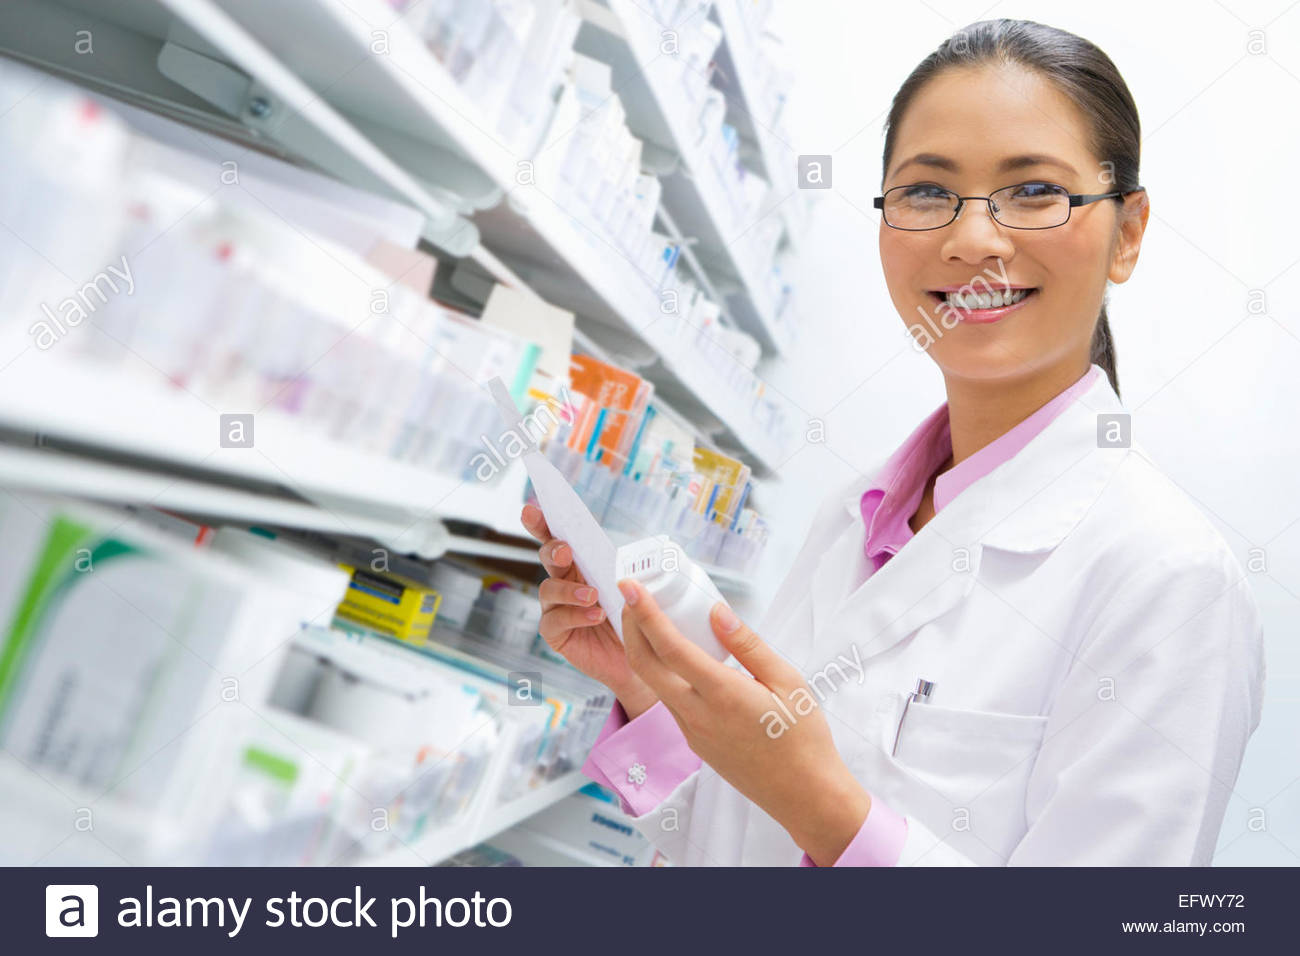 Pharmacist smiling at the camera holding pack of medication and prescription - Stock Image